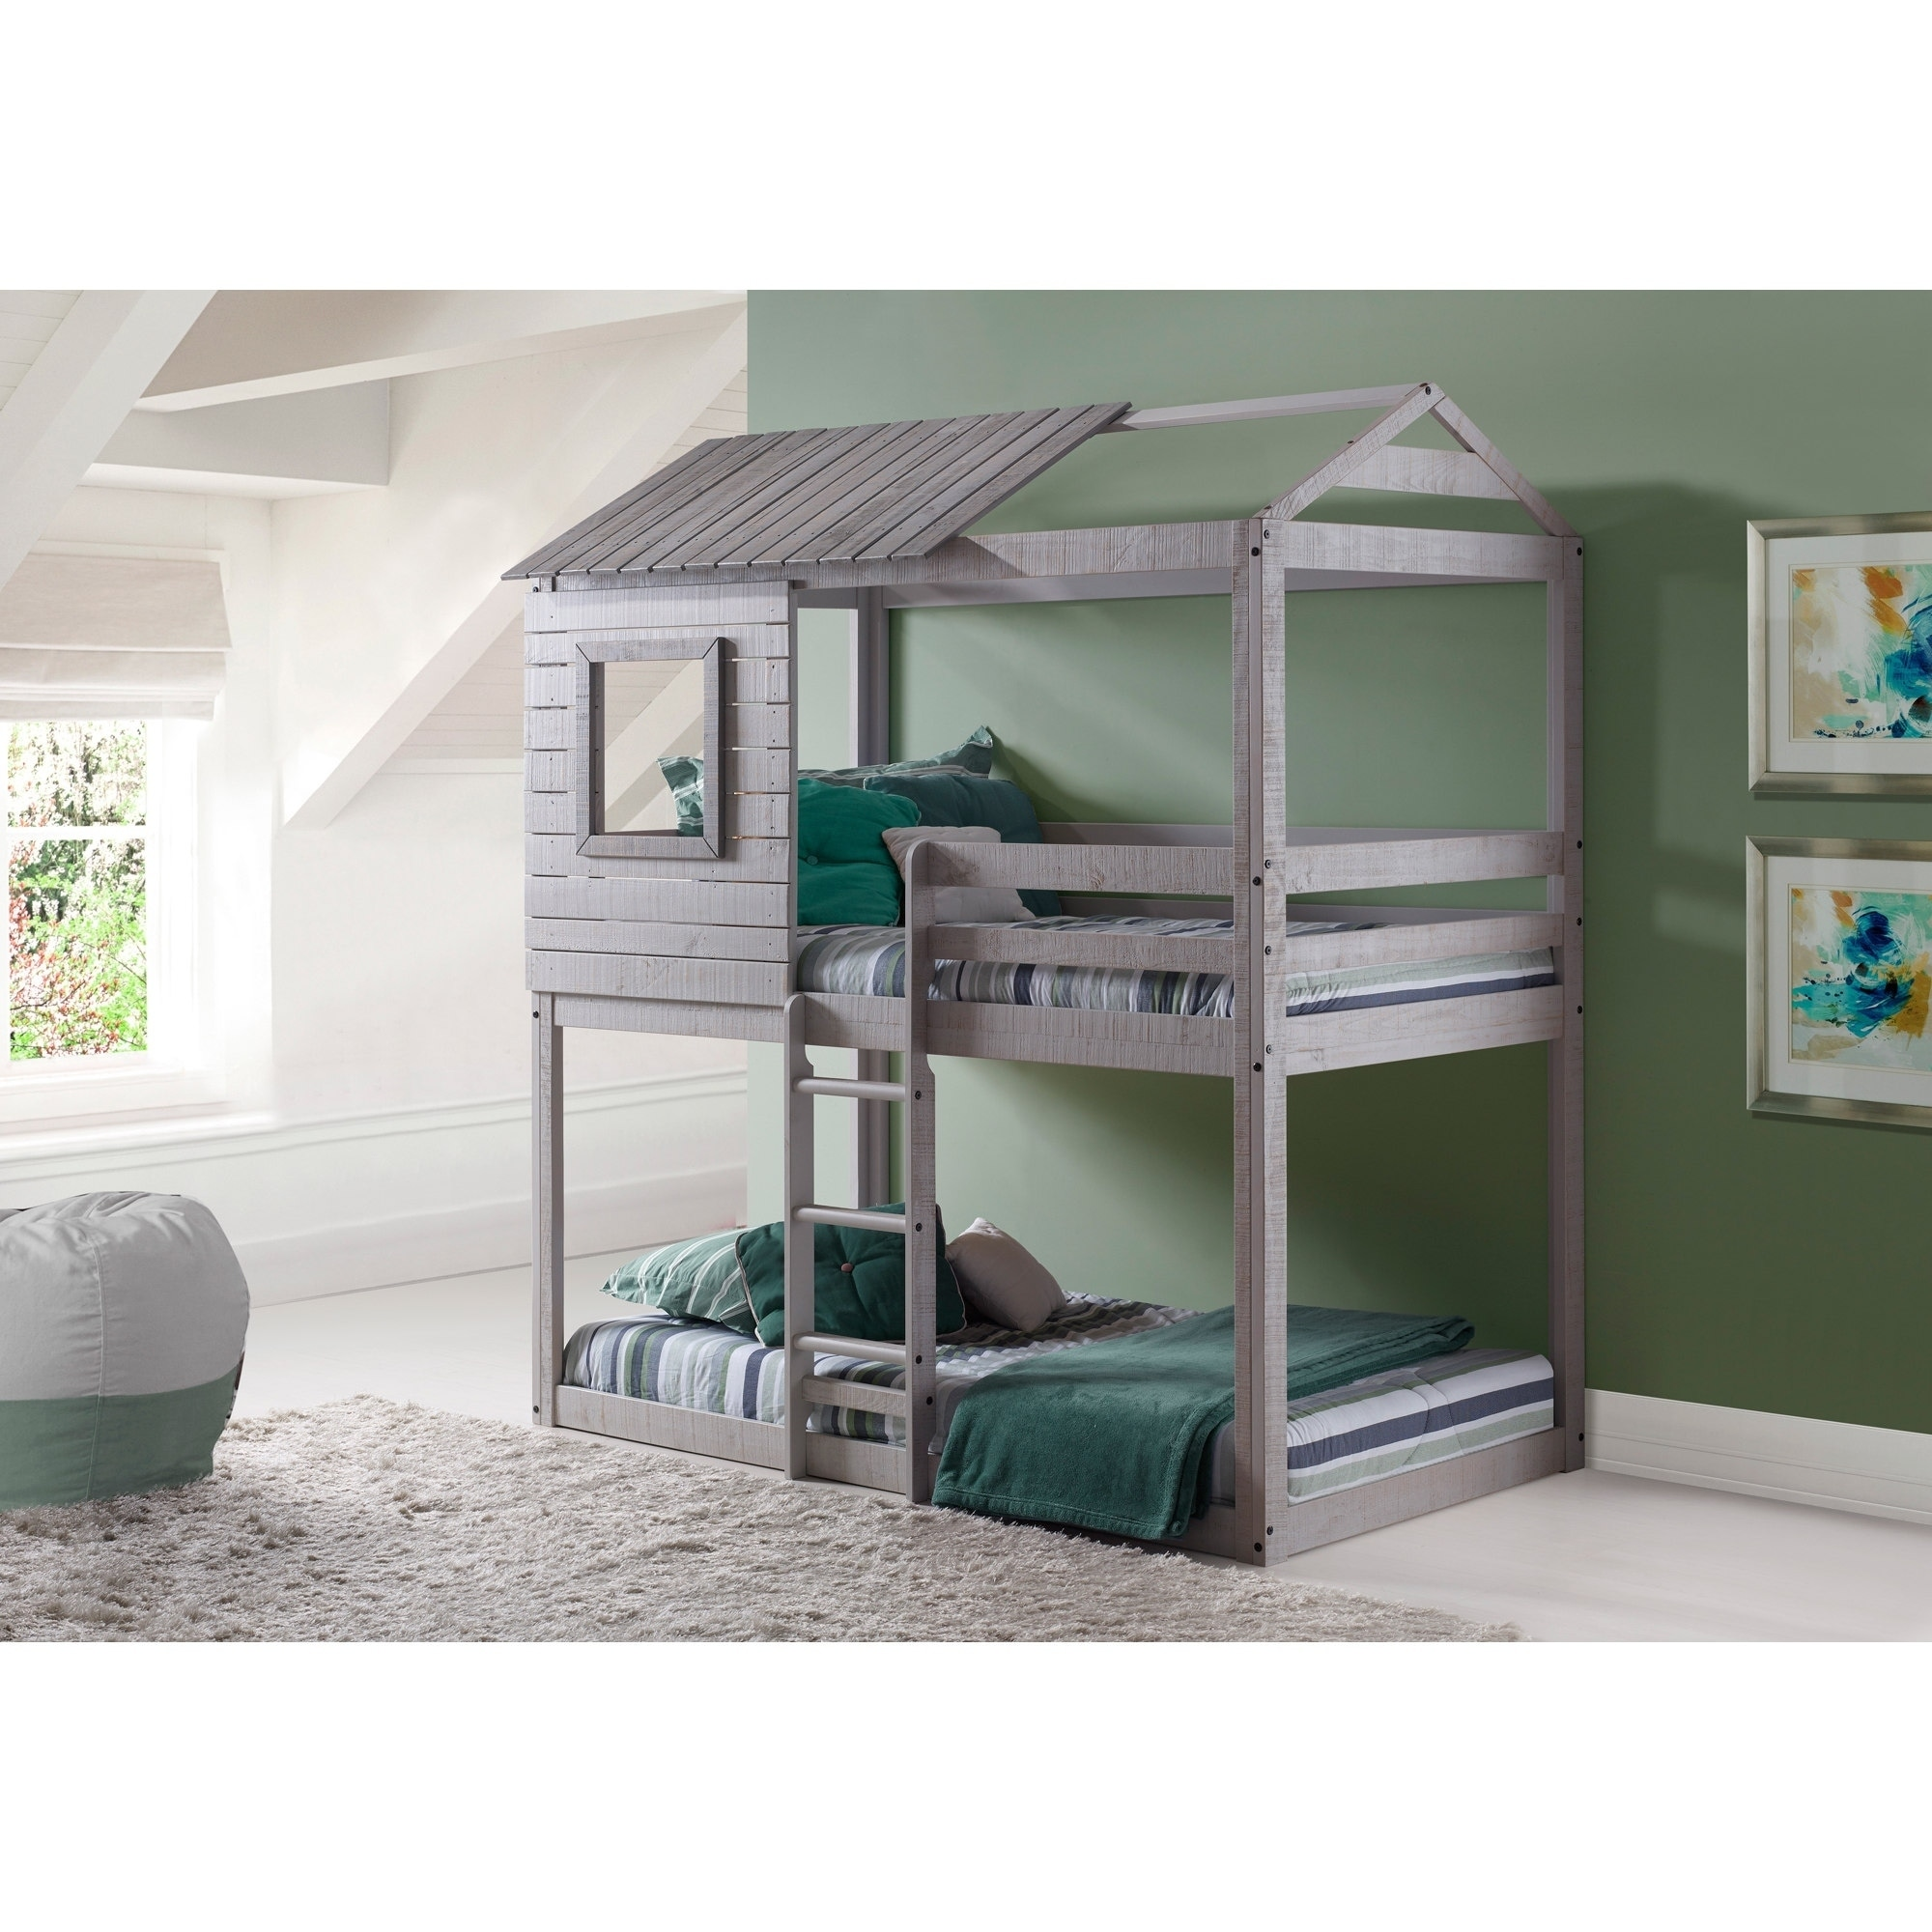 Twin Loft Bed.Donco Kids Loft Style Light Grey Twin Over Twin Bunk Bed